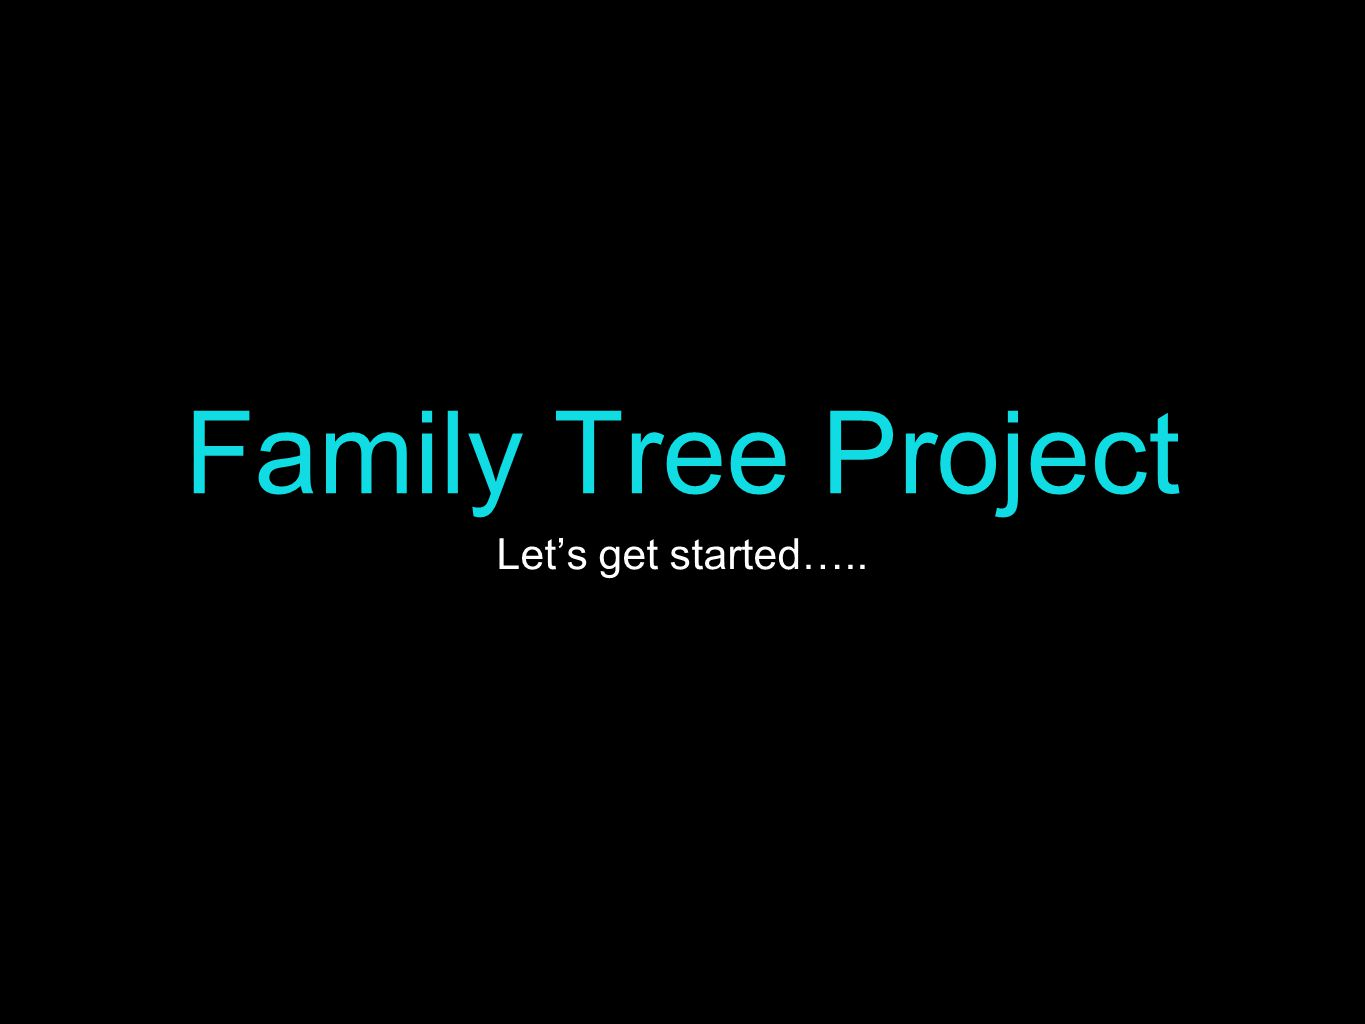 Family tree project lets get started what is a family tree a 1 family tree project lets get started ccuart Gallery